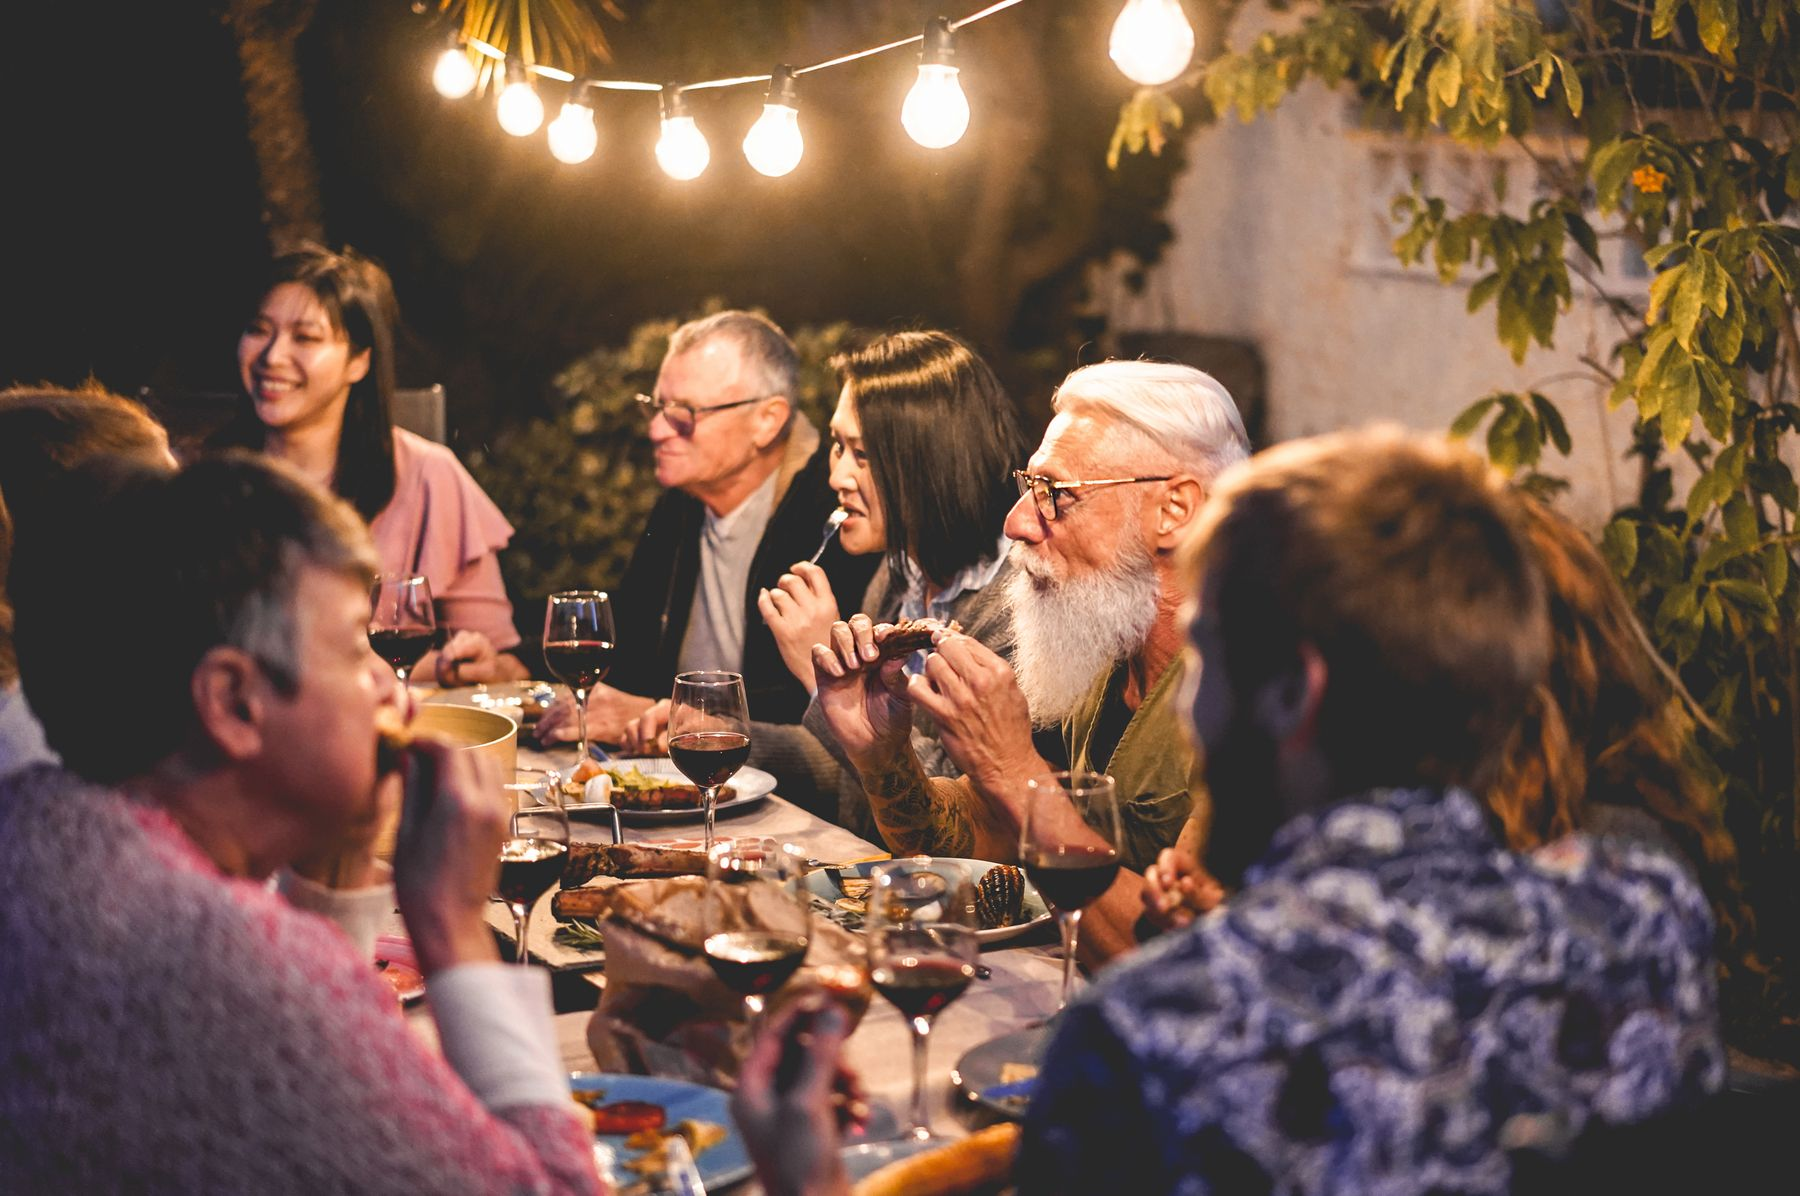 Christms traditions around the world: in Australia, people barbecue on Christmas day